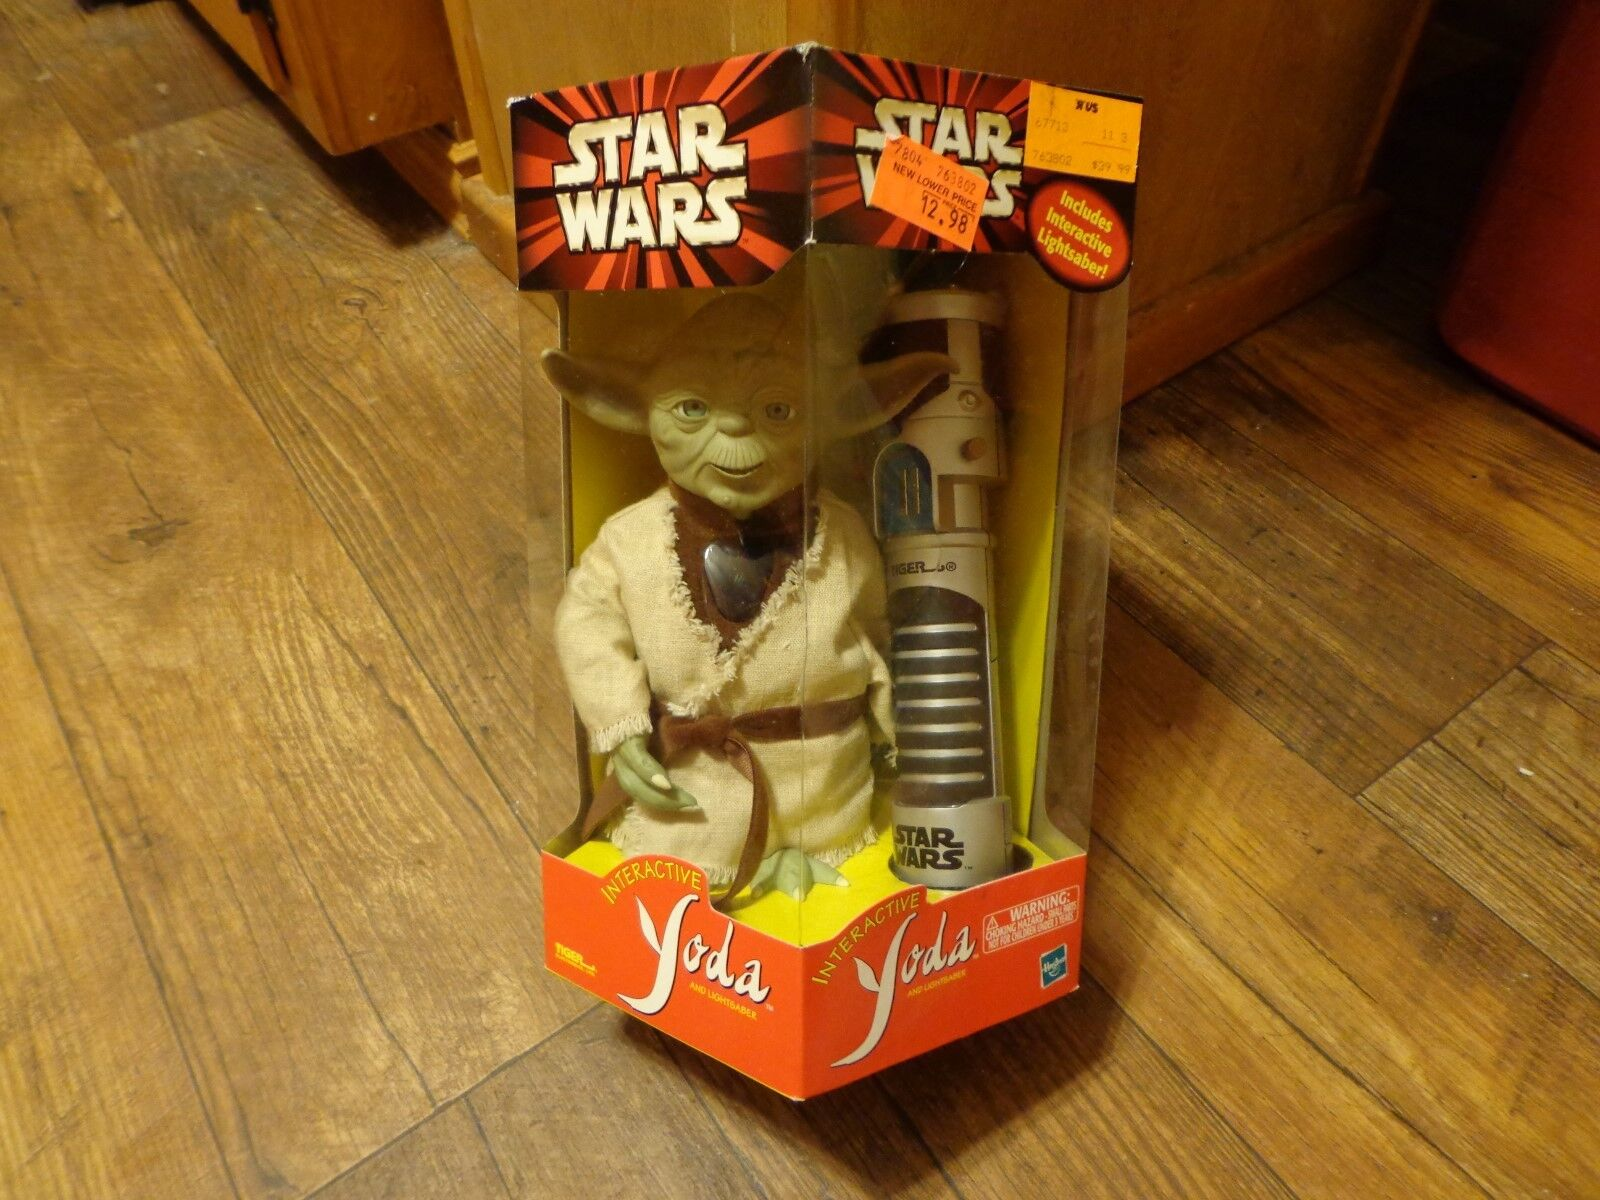 2000 HASBRO--STAR WARS--INTERACTIVE YODA FIGURE AND LIGHTSABER (NEW)